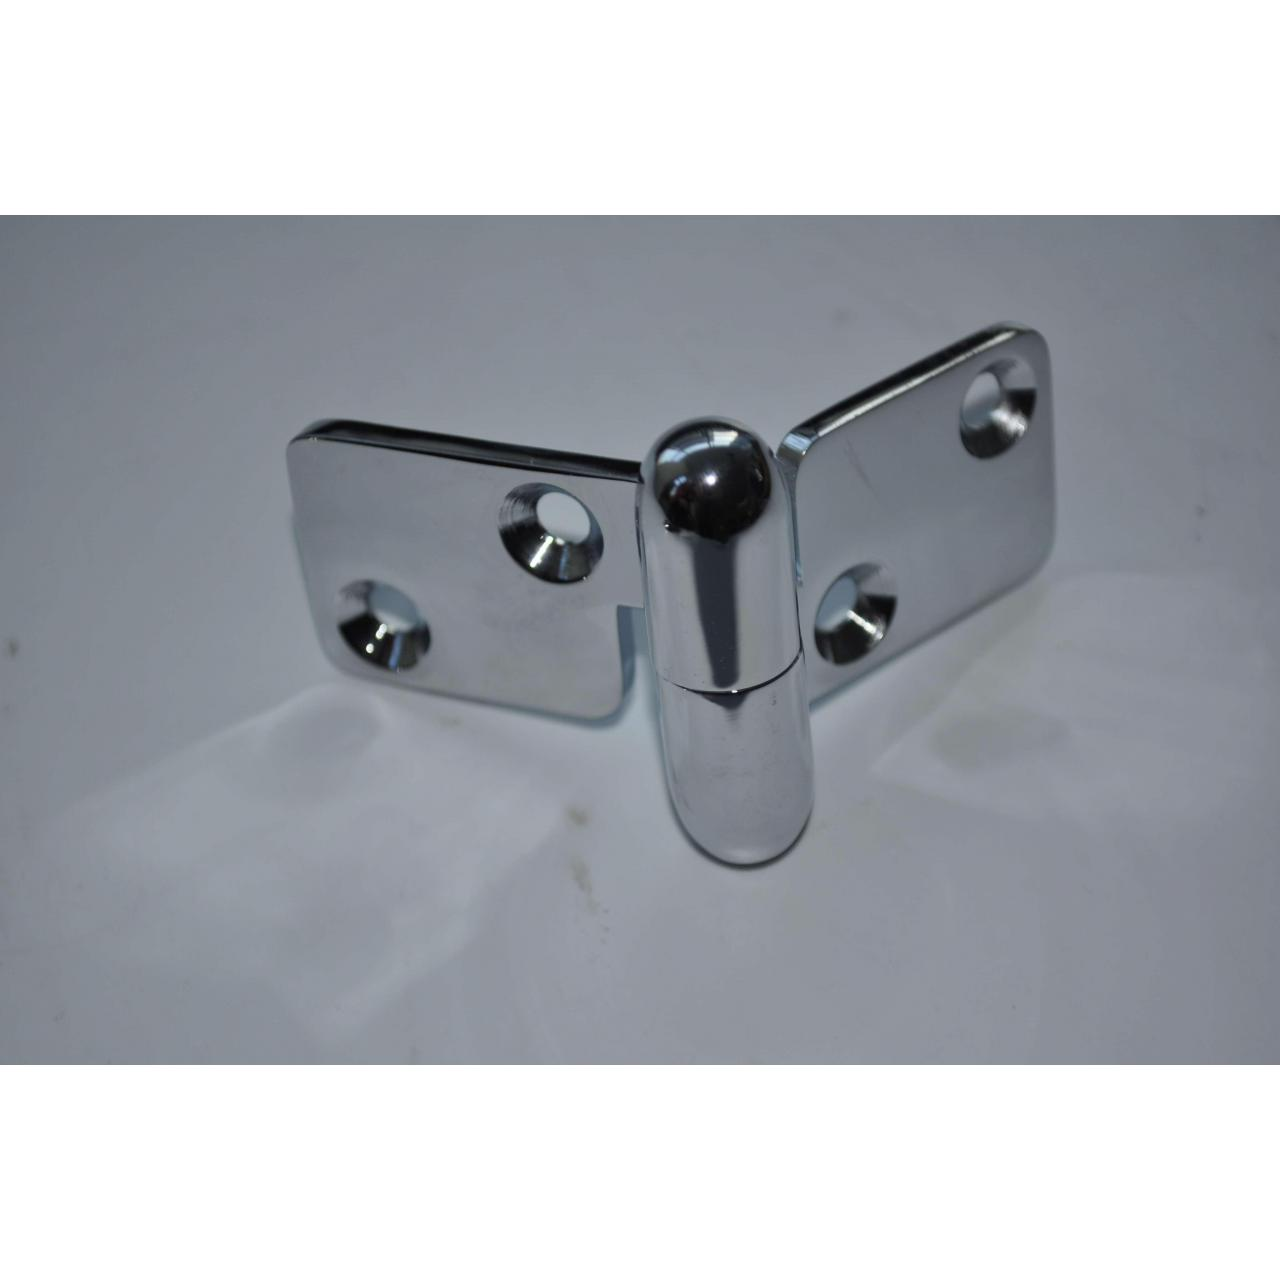 China Marine Hardware Stainless Steel Strap Hinge for Boat wholesale